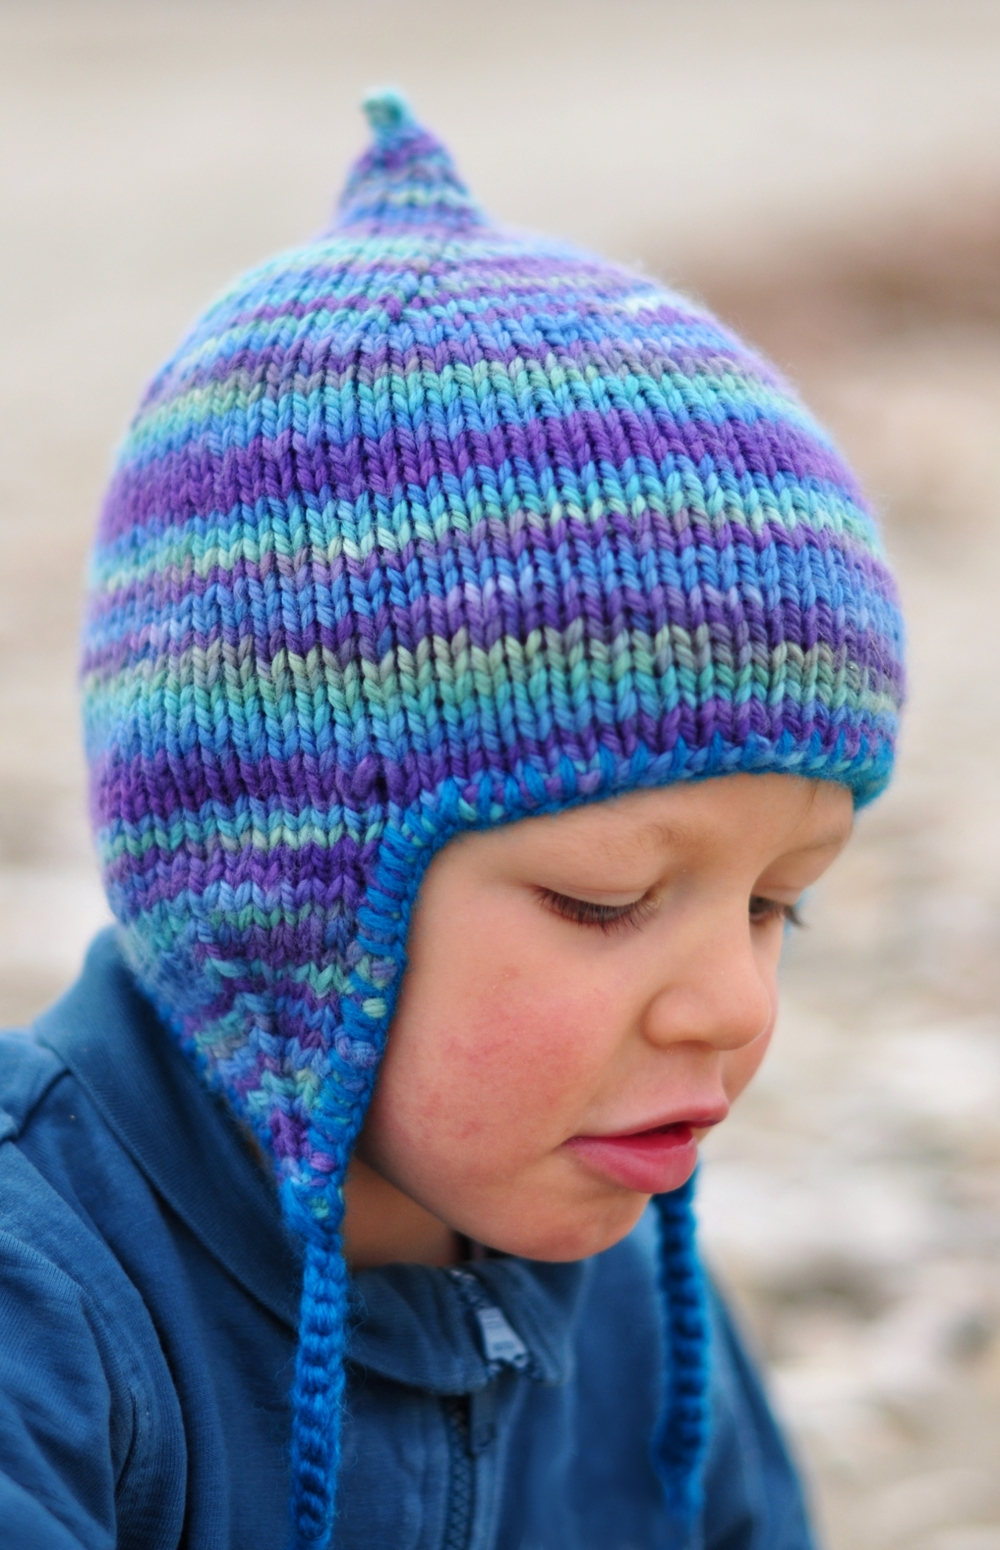 Bimple pixie chullo kids Hat knitting pattern in bulky — Woolly Wormhead